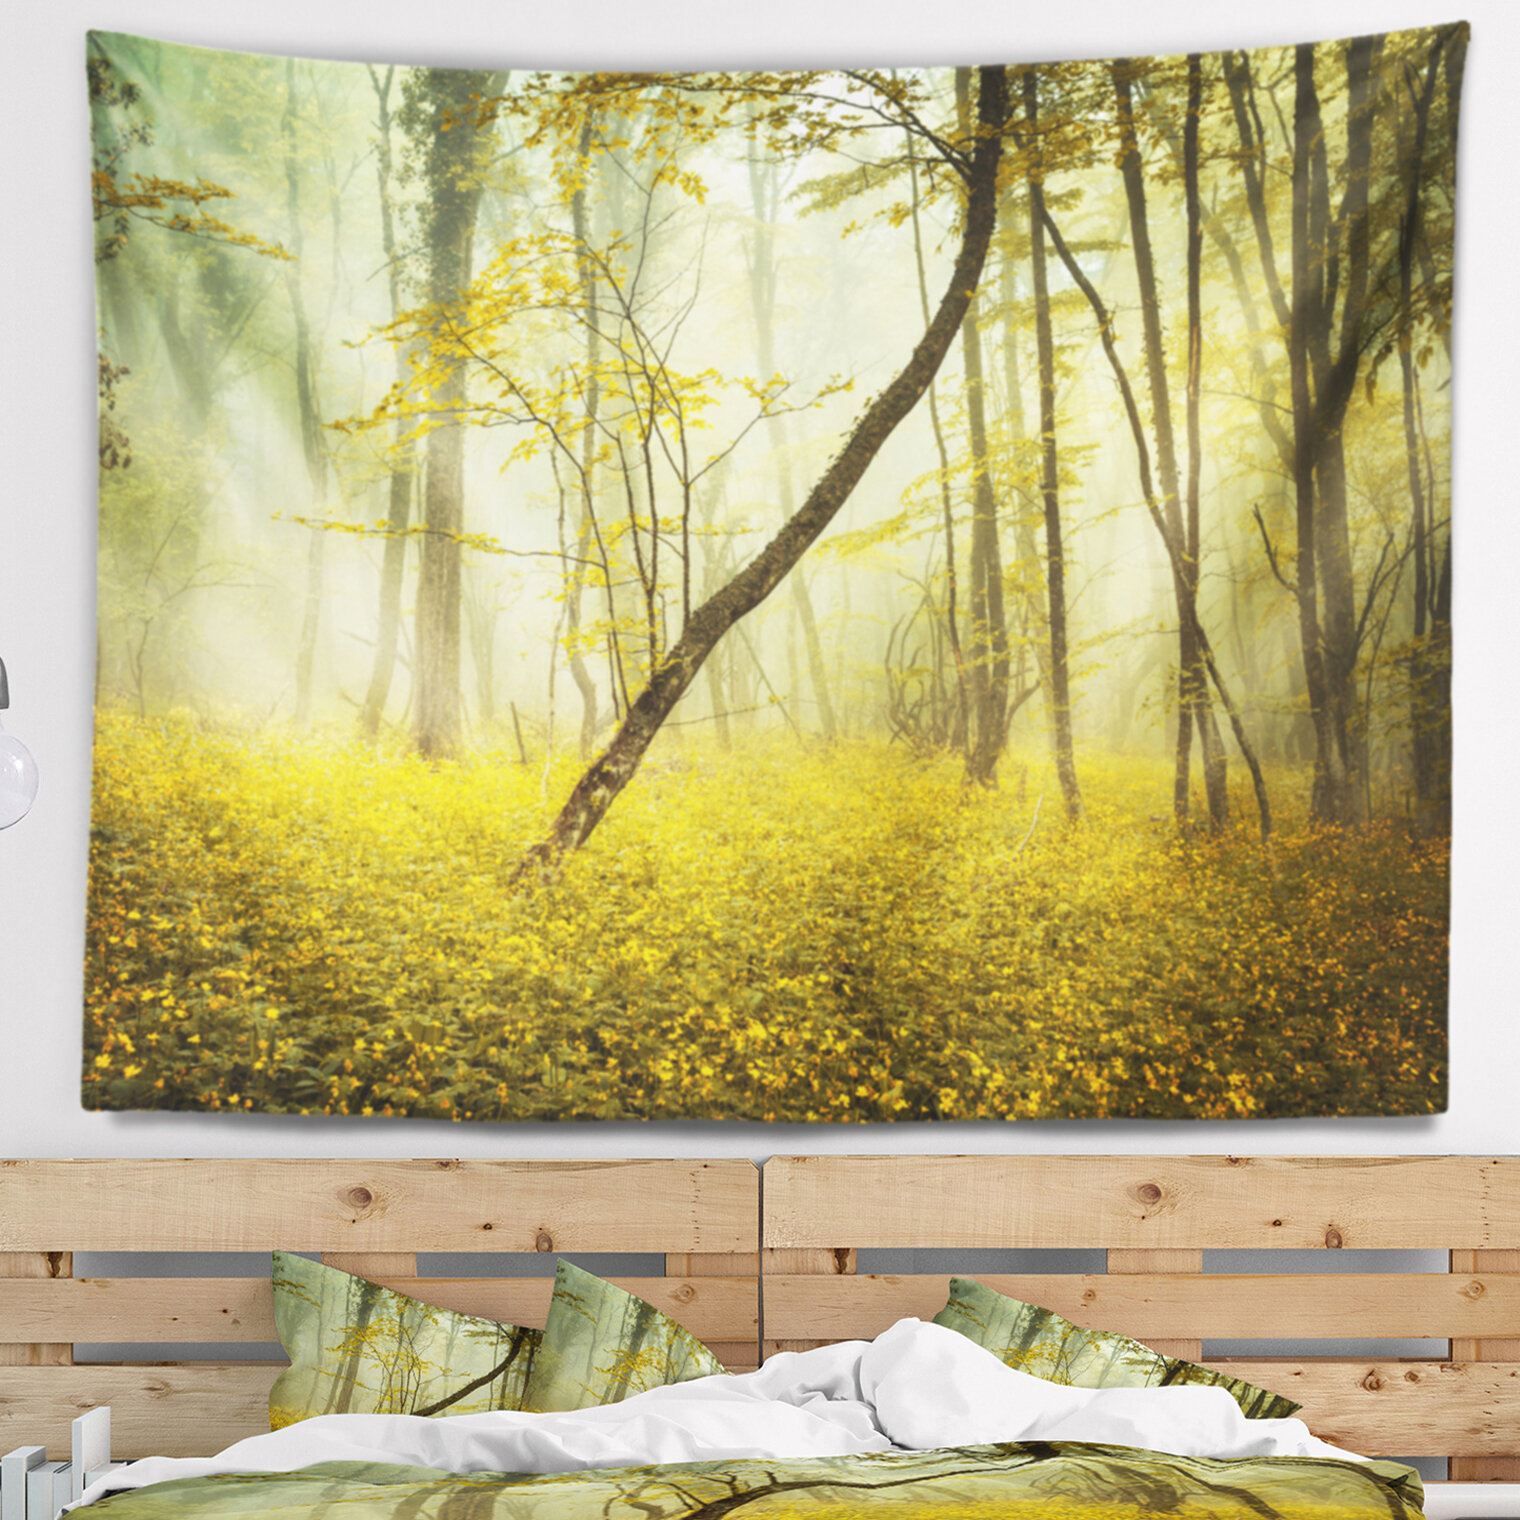 East Urban Home Landscape Photography Forest with Yellow Flowers ...